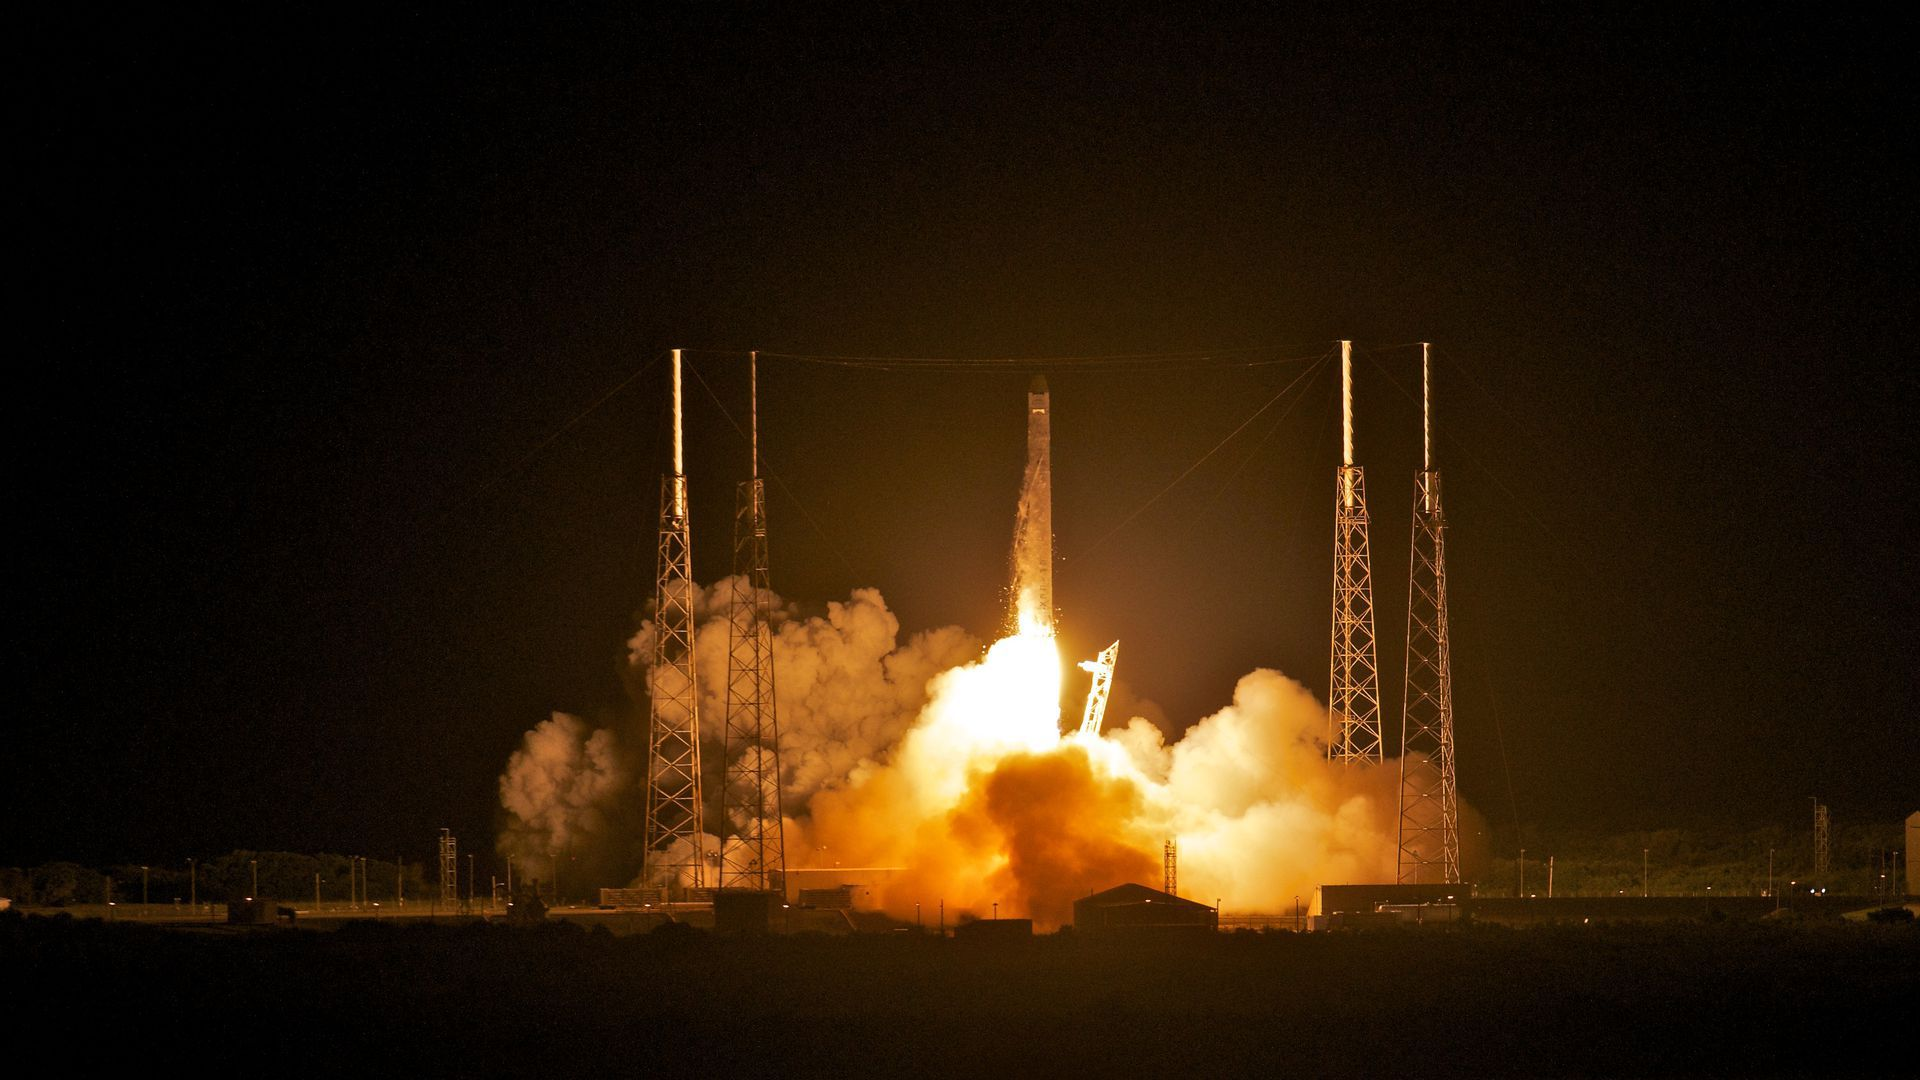 Rocket photo for SpaceX story